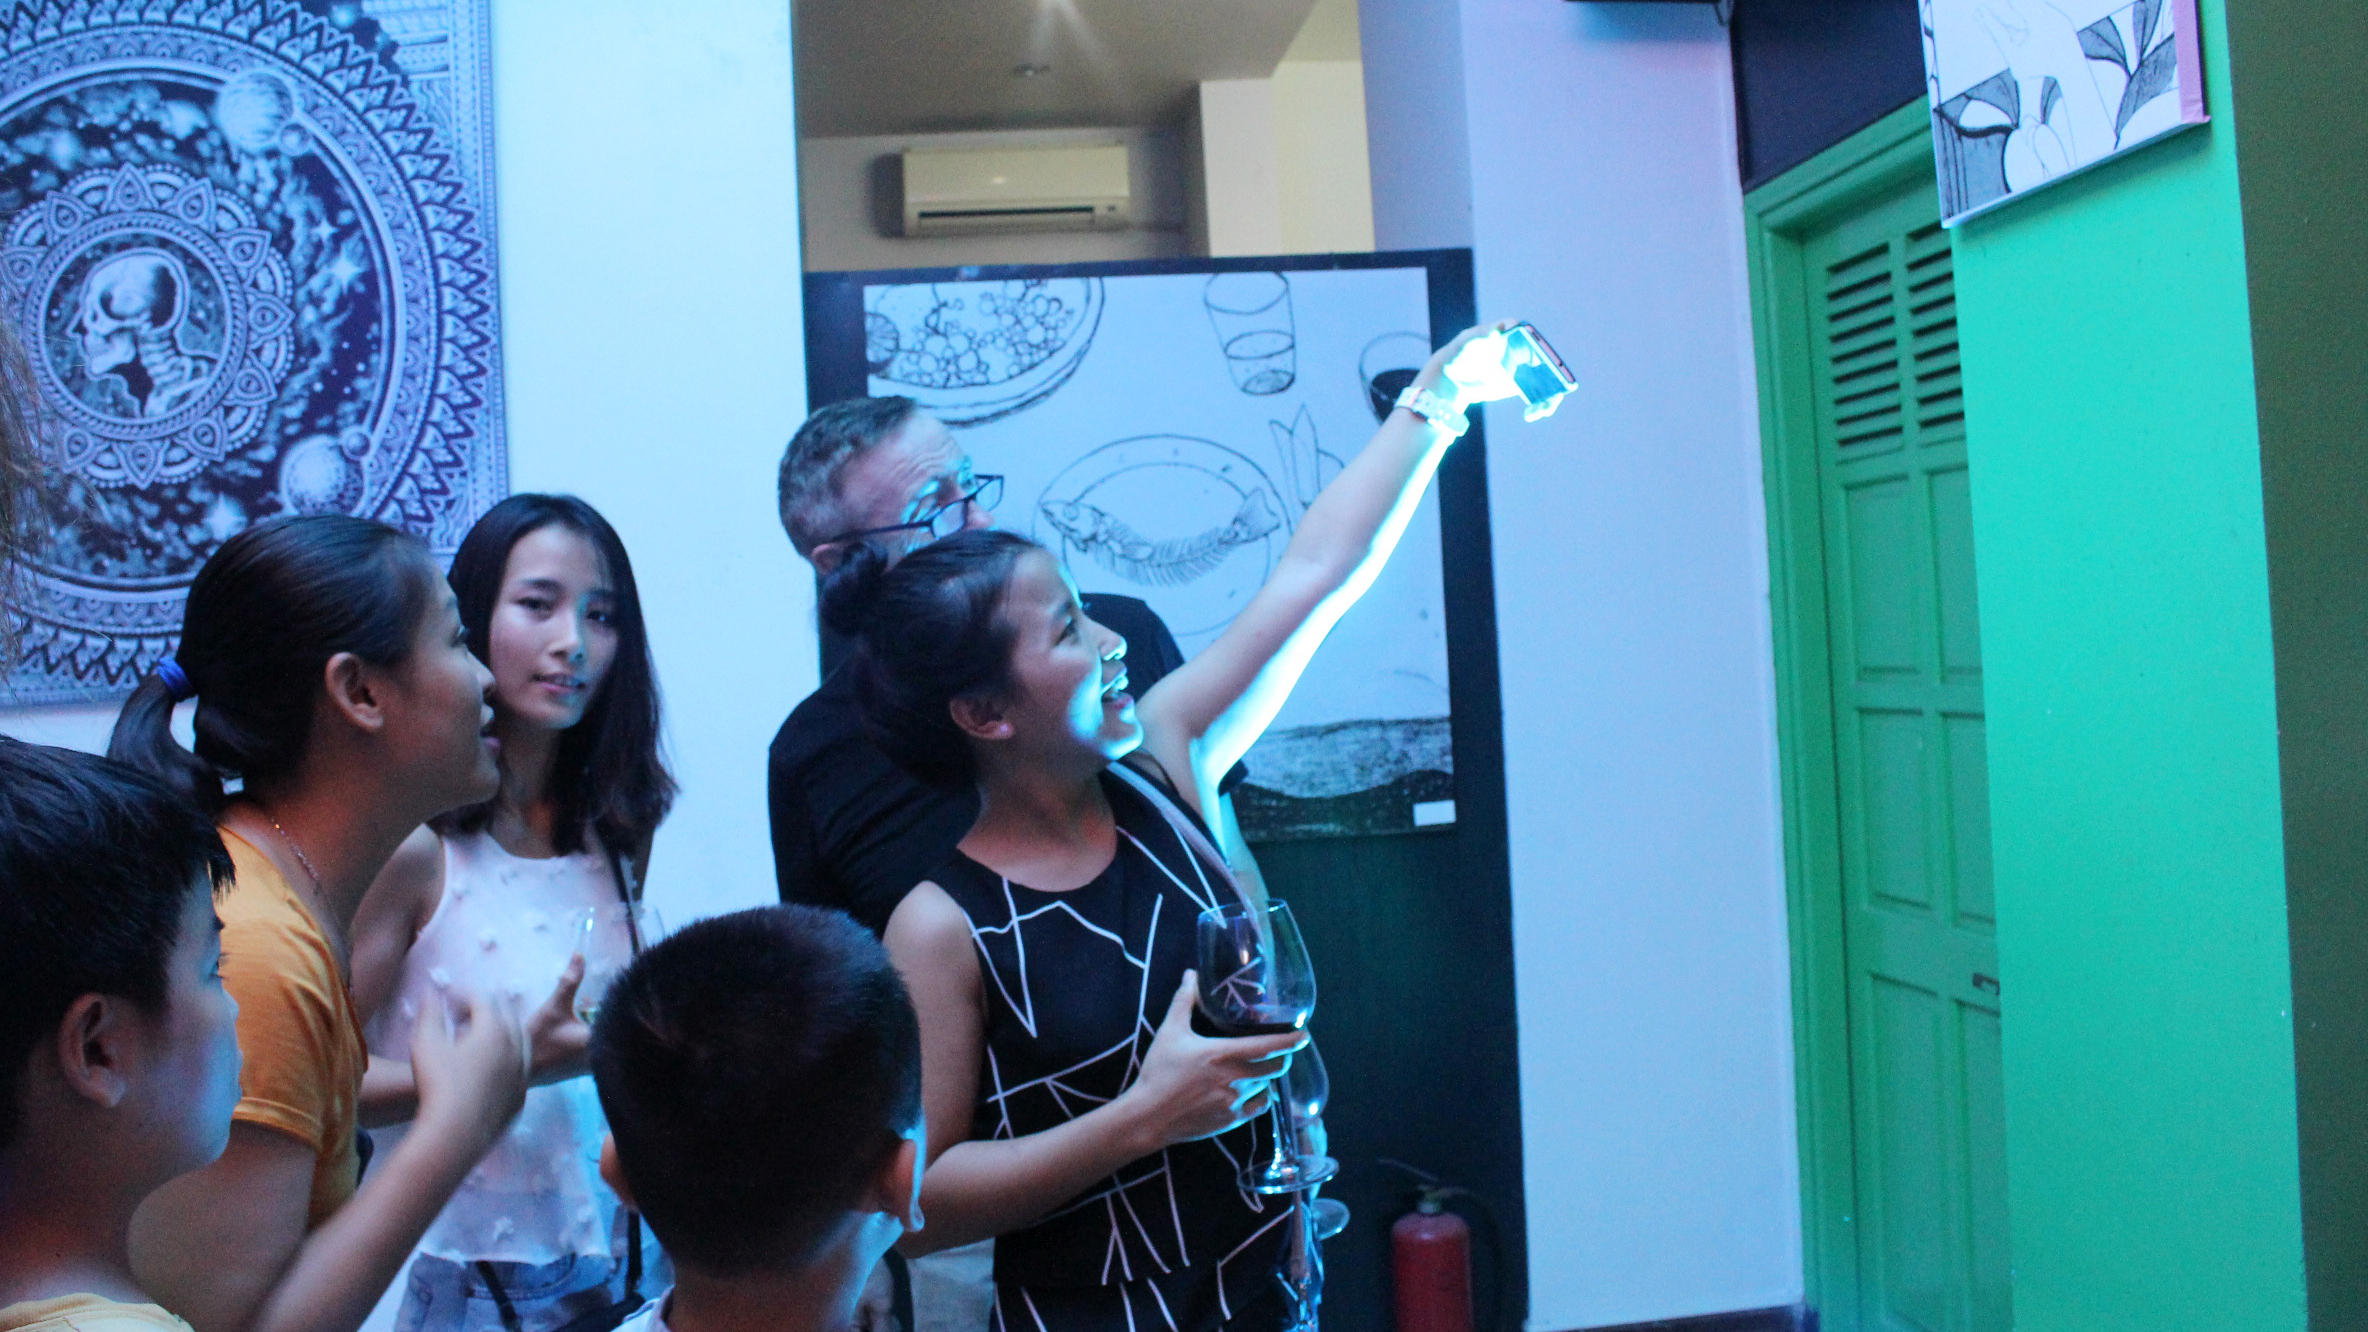 Visitors observe the augmented reality (AR) artwork at the gallery in the central Vietnamese city of Da Nang on September 16, 2017. Photo: Tuoi Tre